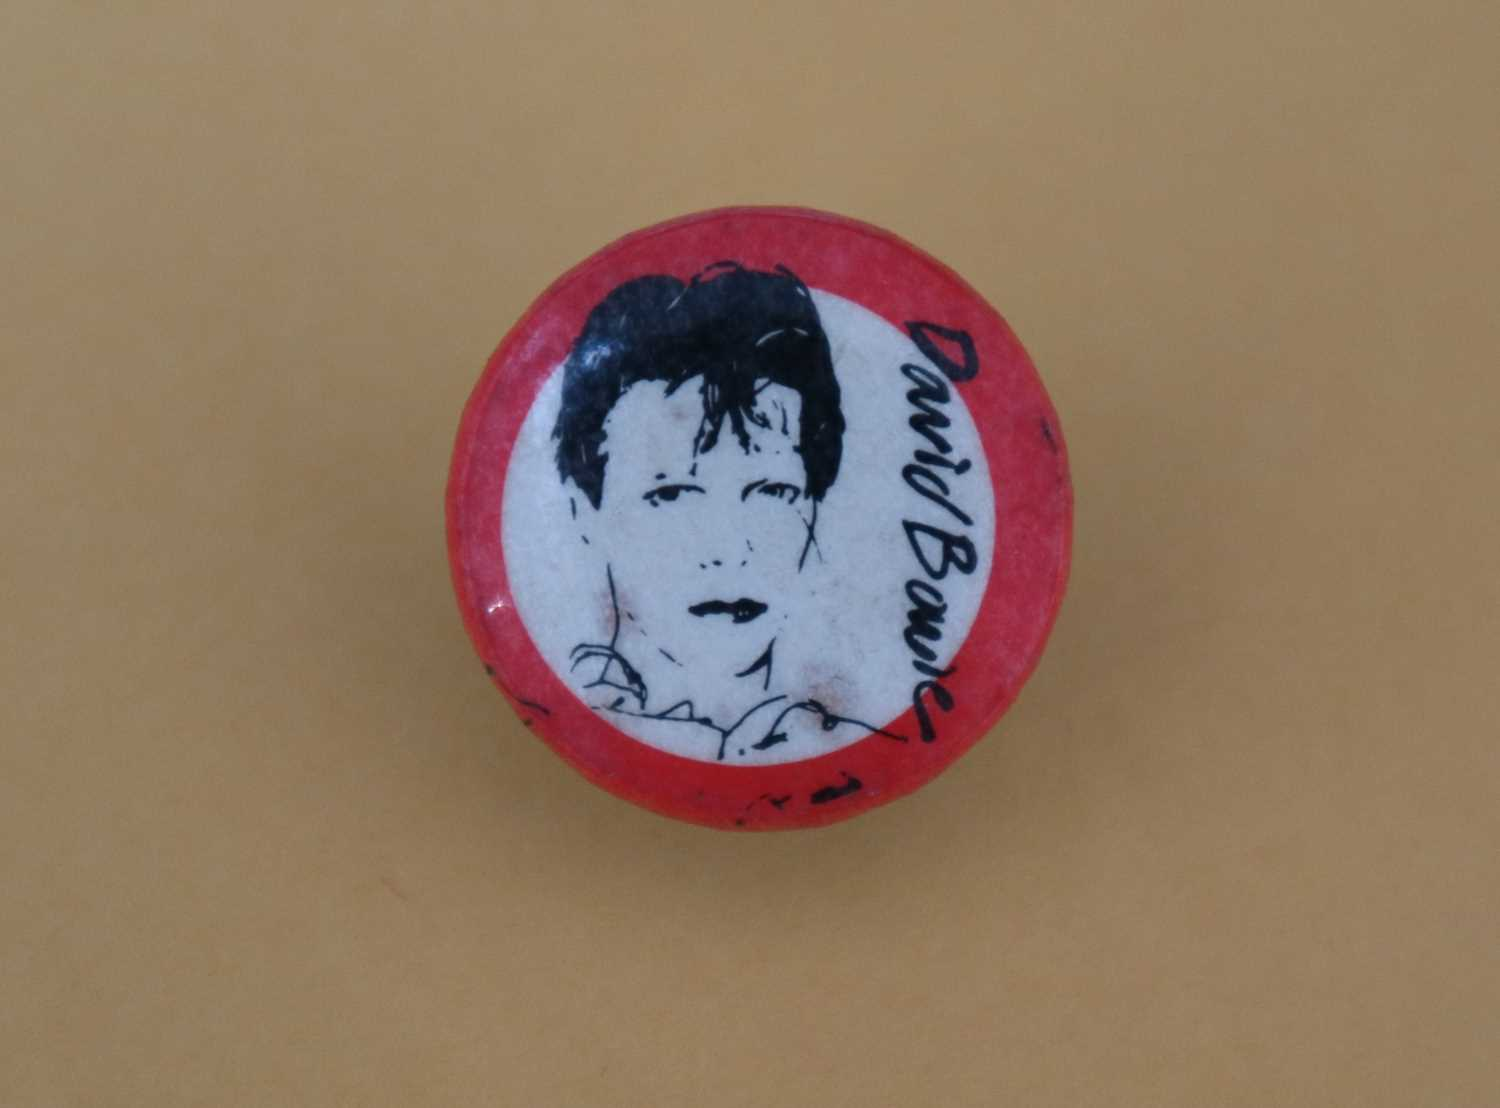 David Bowie Scary Monsters Pin Button Badge - Image 4 of 5